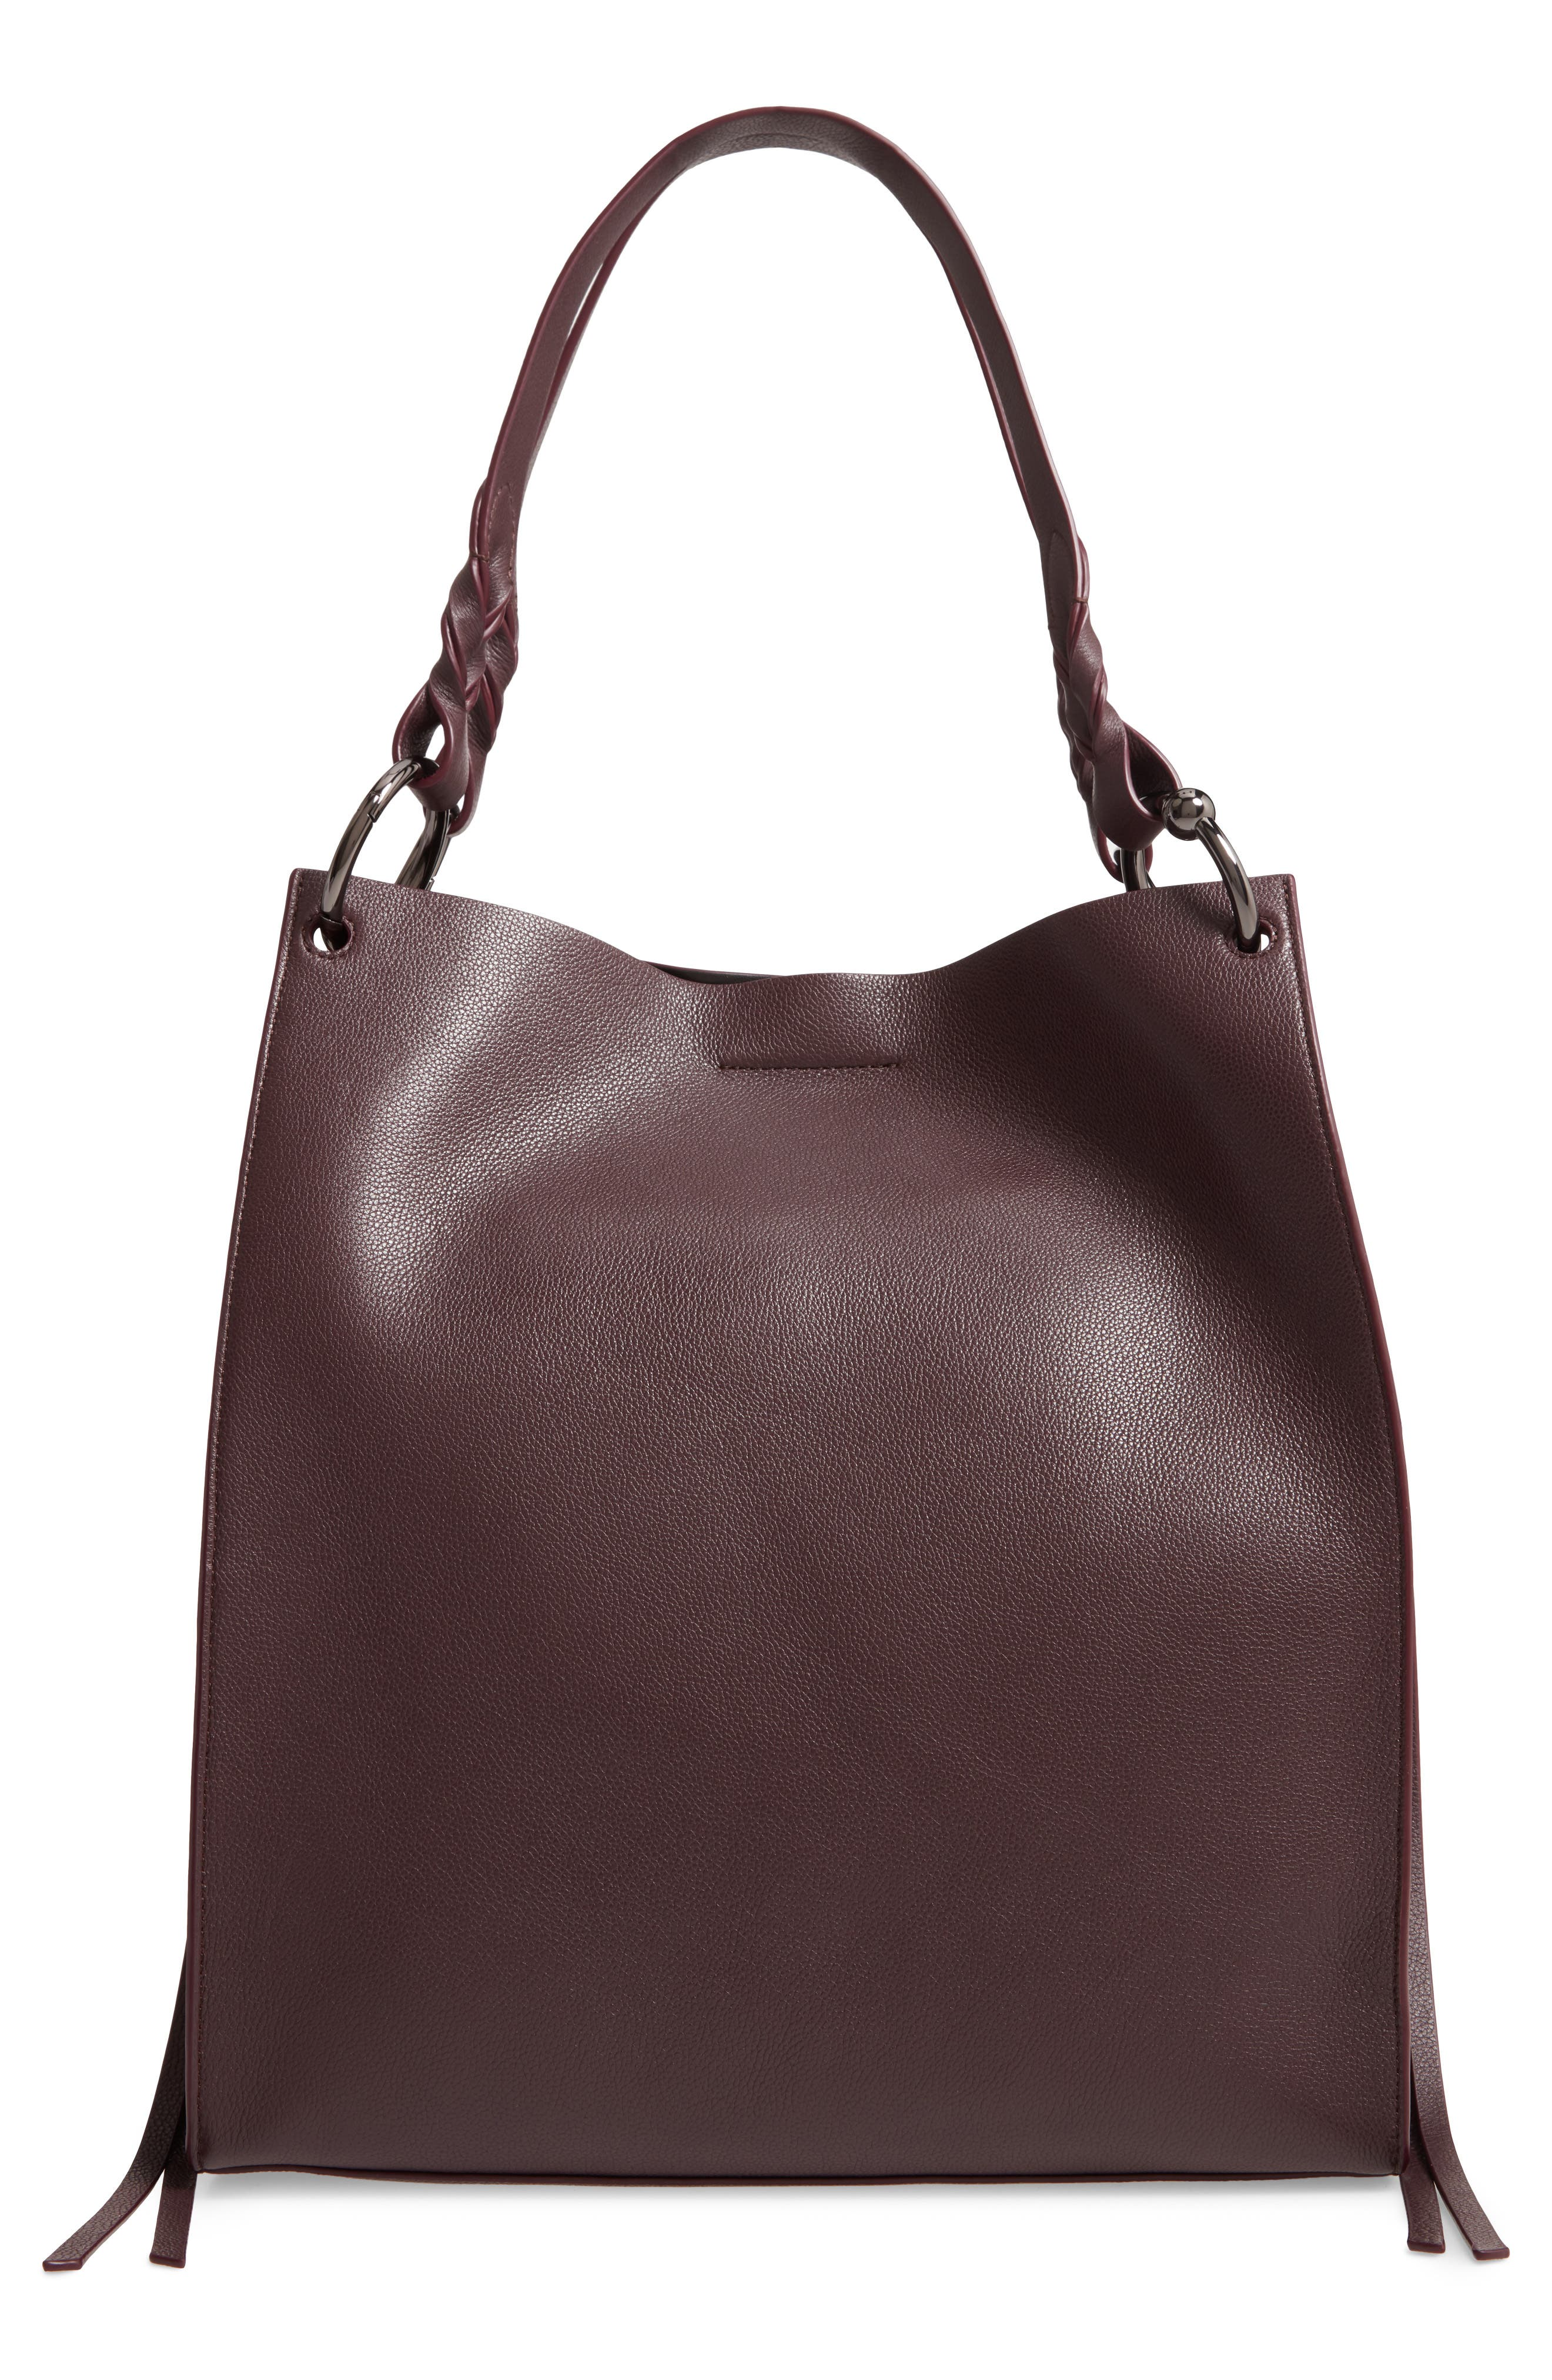 Image of Rebecca Minkoff Kate Soft North South Leather Tote